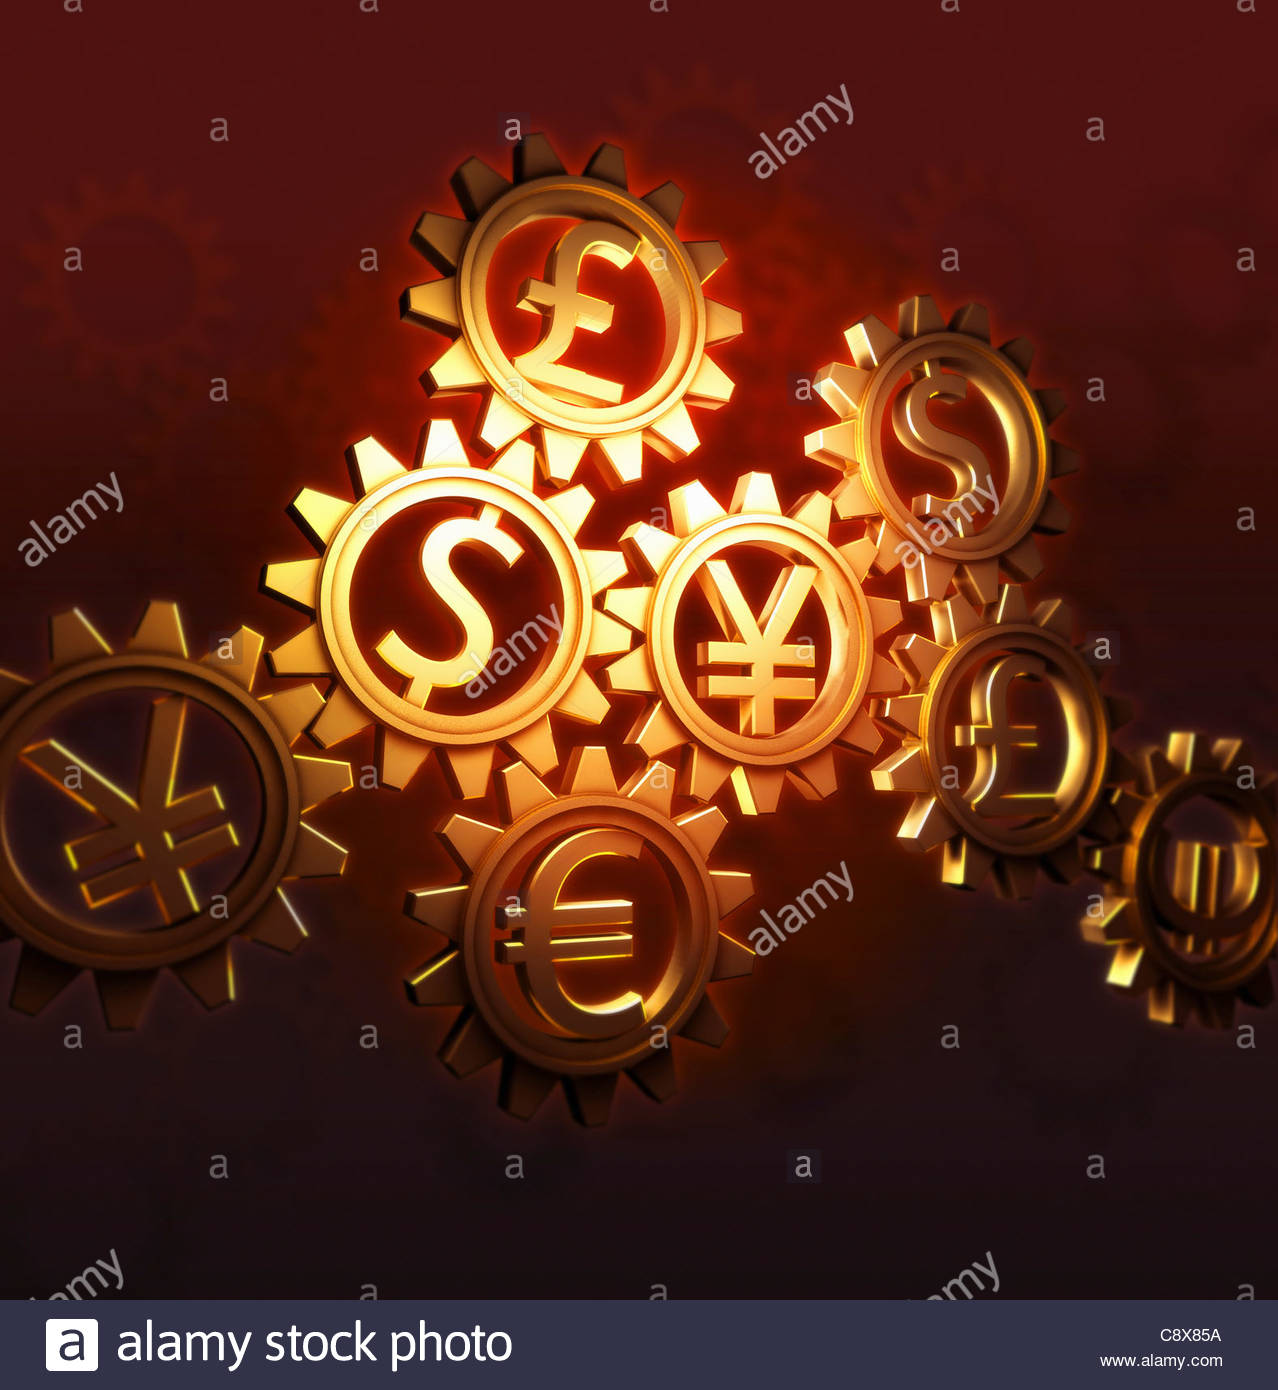 Connected cogs with currency symbols - Stock Image